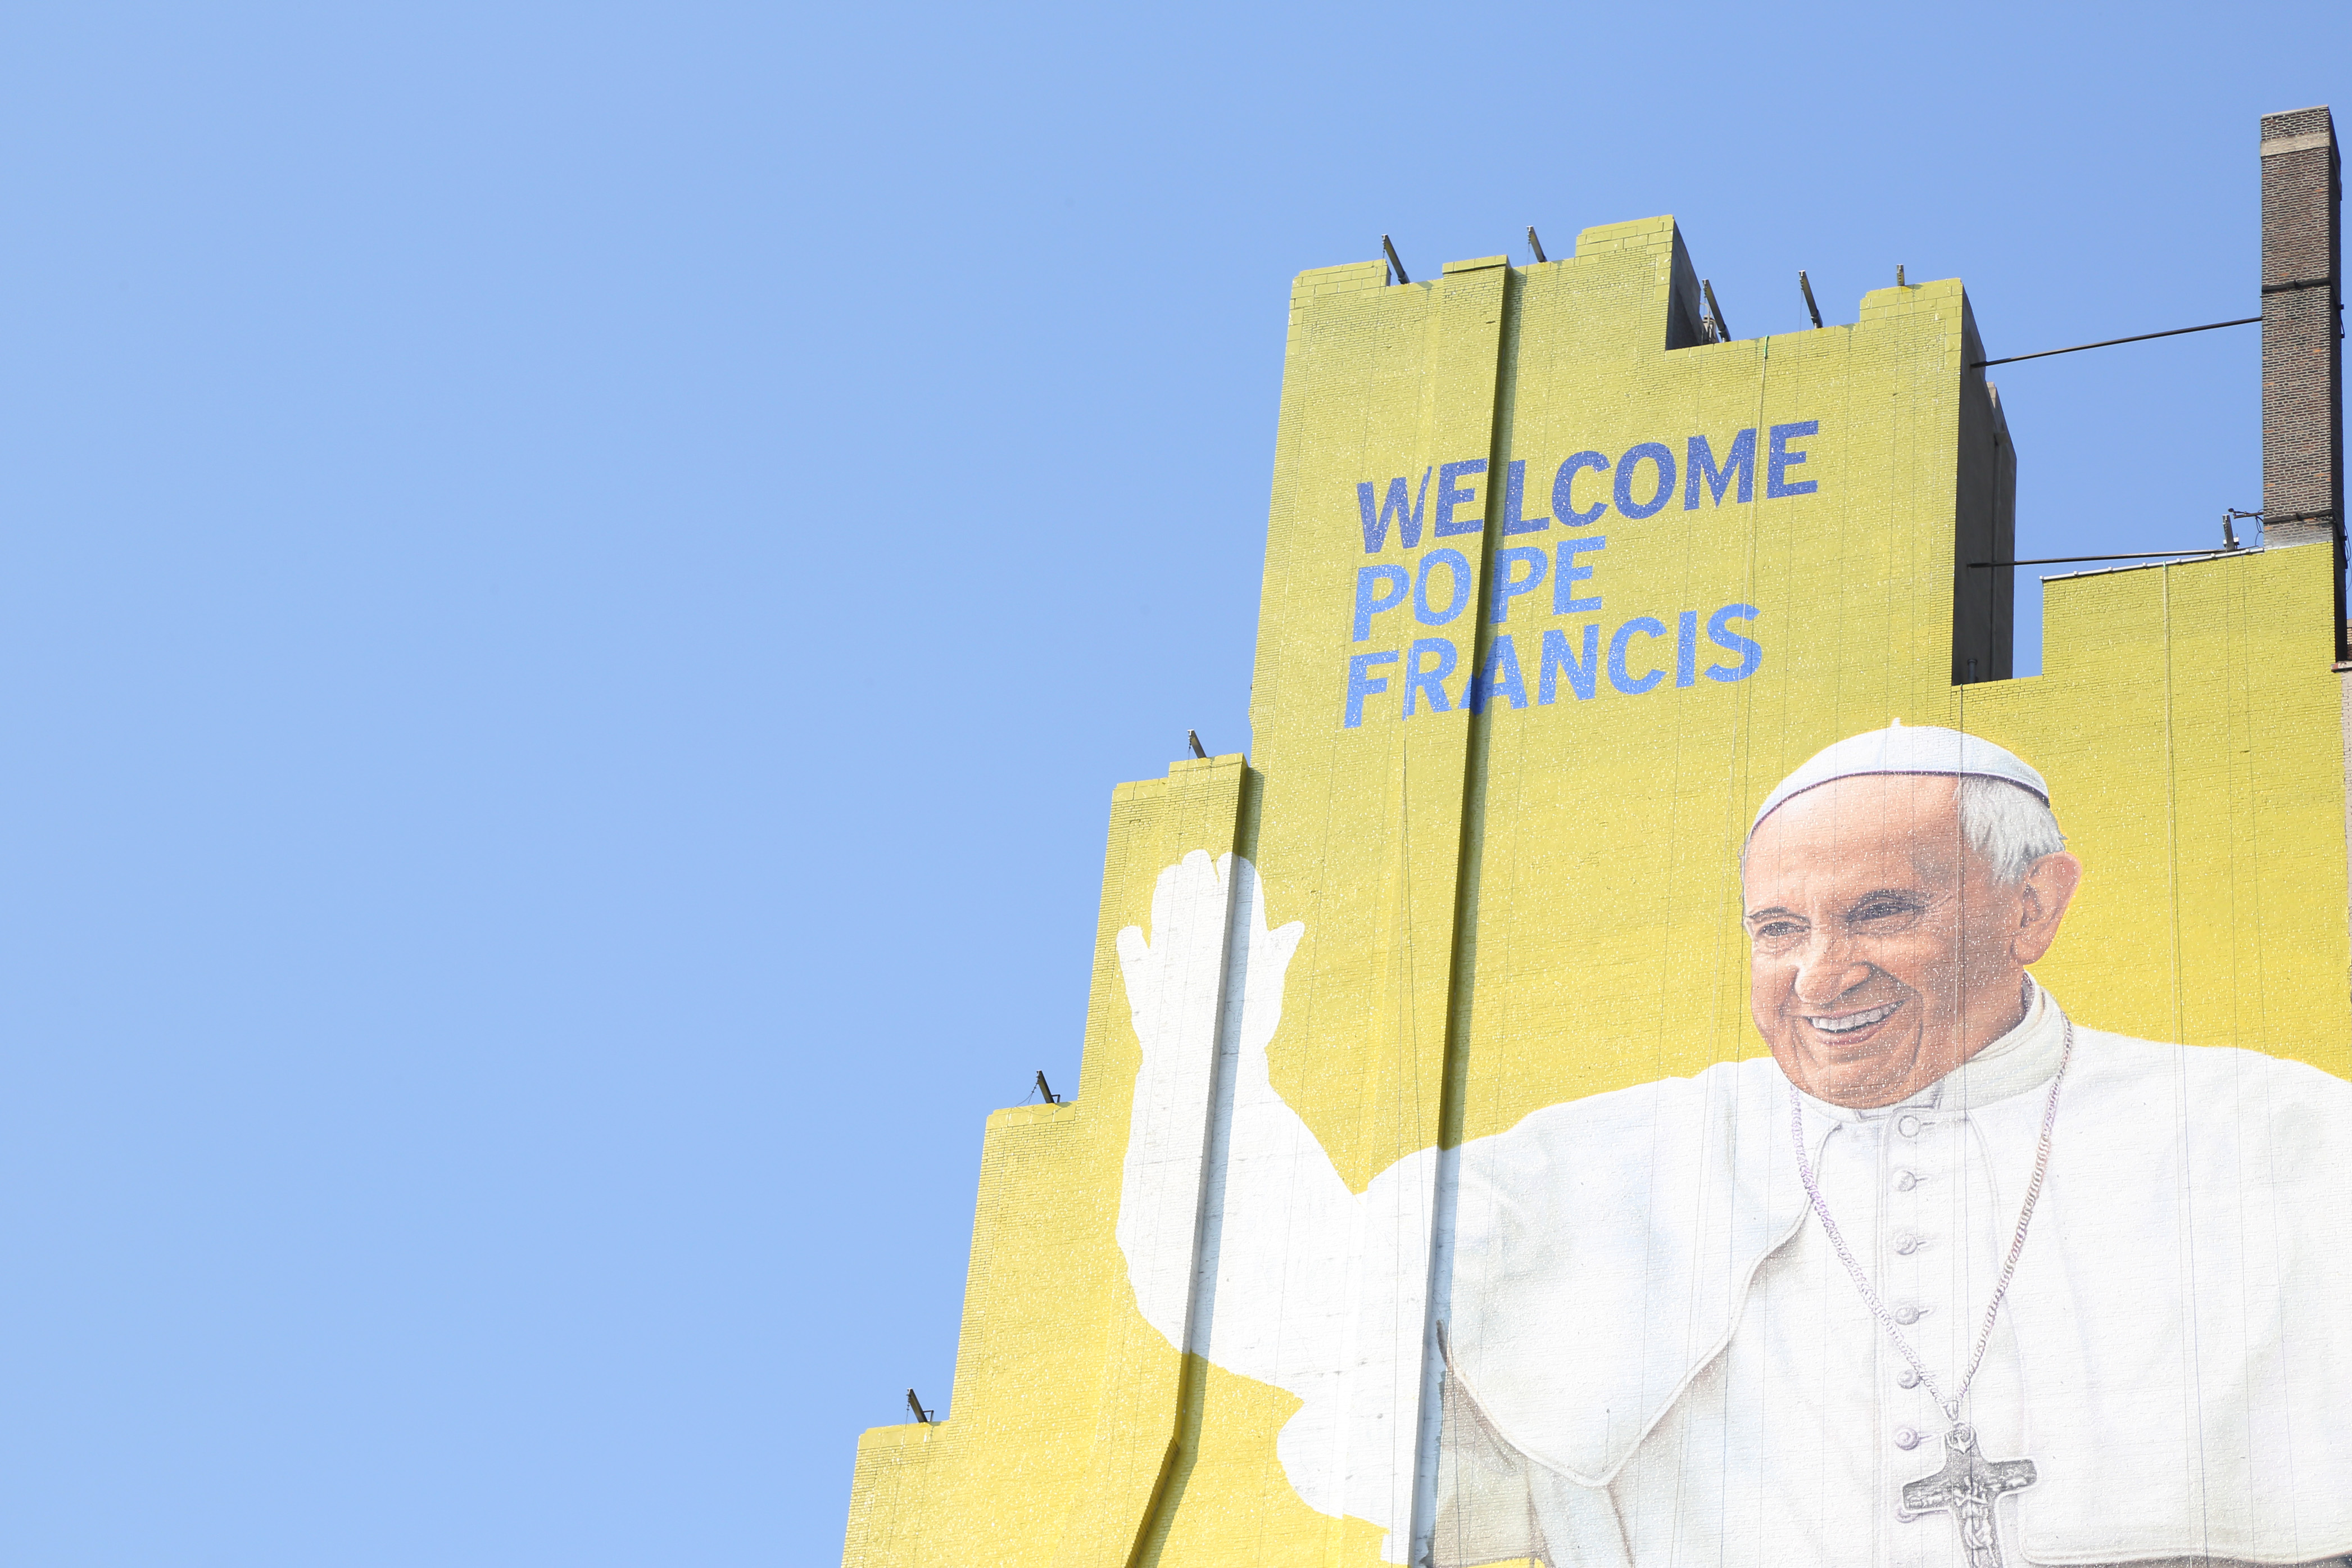 A westside building mural of Pope Francis is almost complete in midtown Manhattan on Sept. 2, 2015 in New York City.